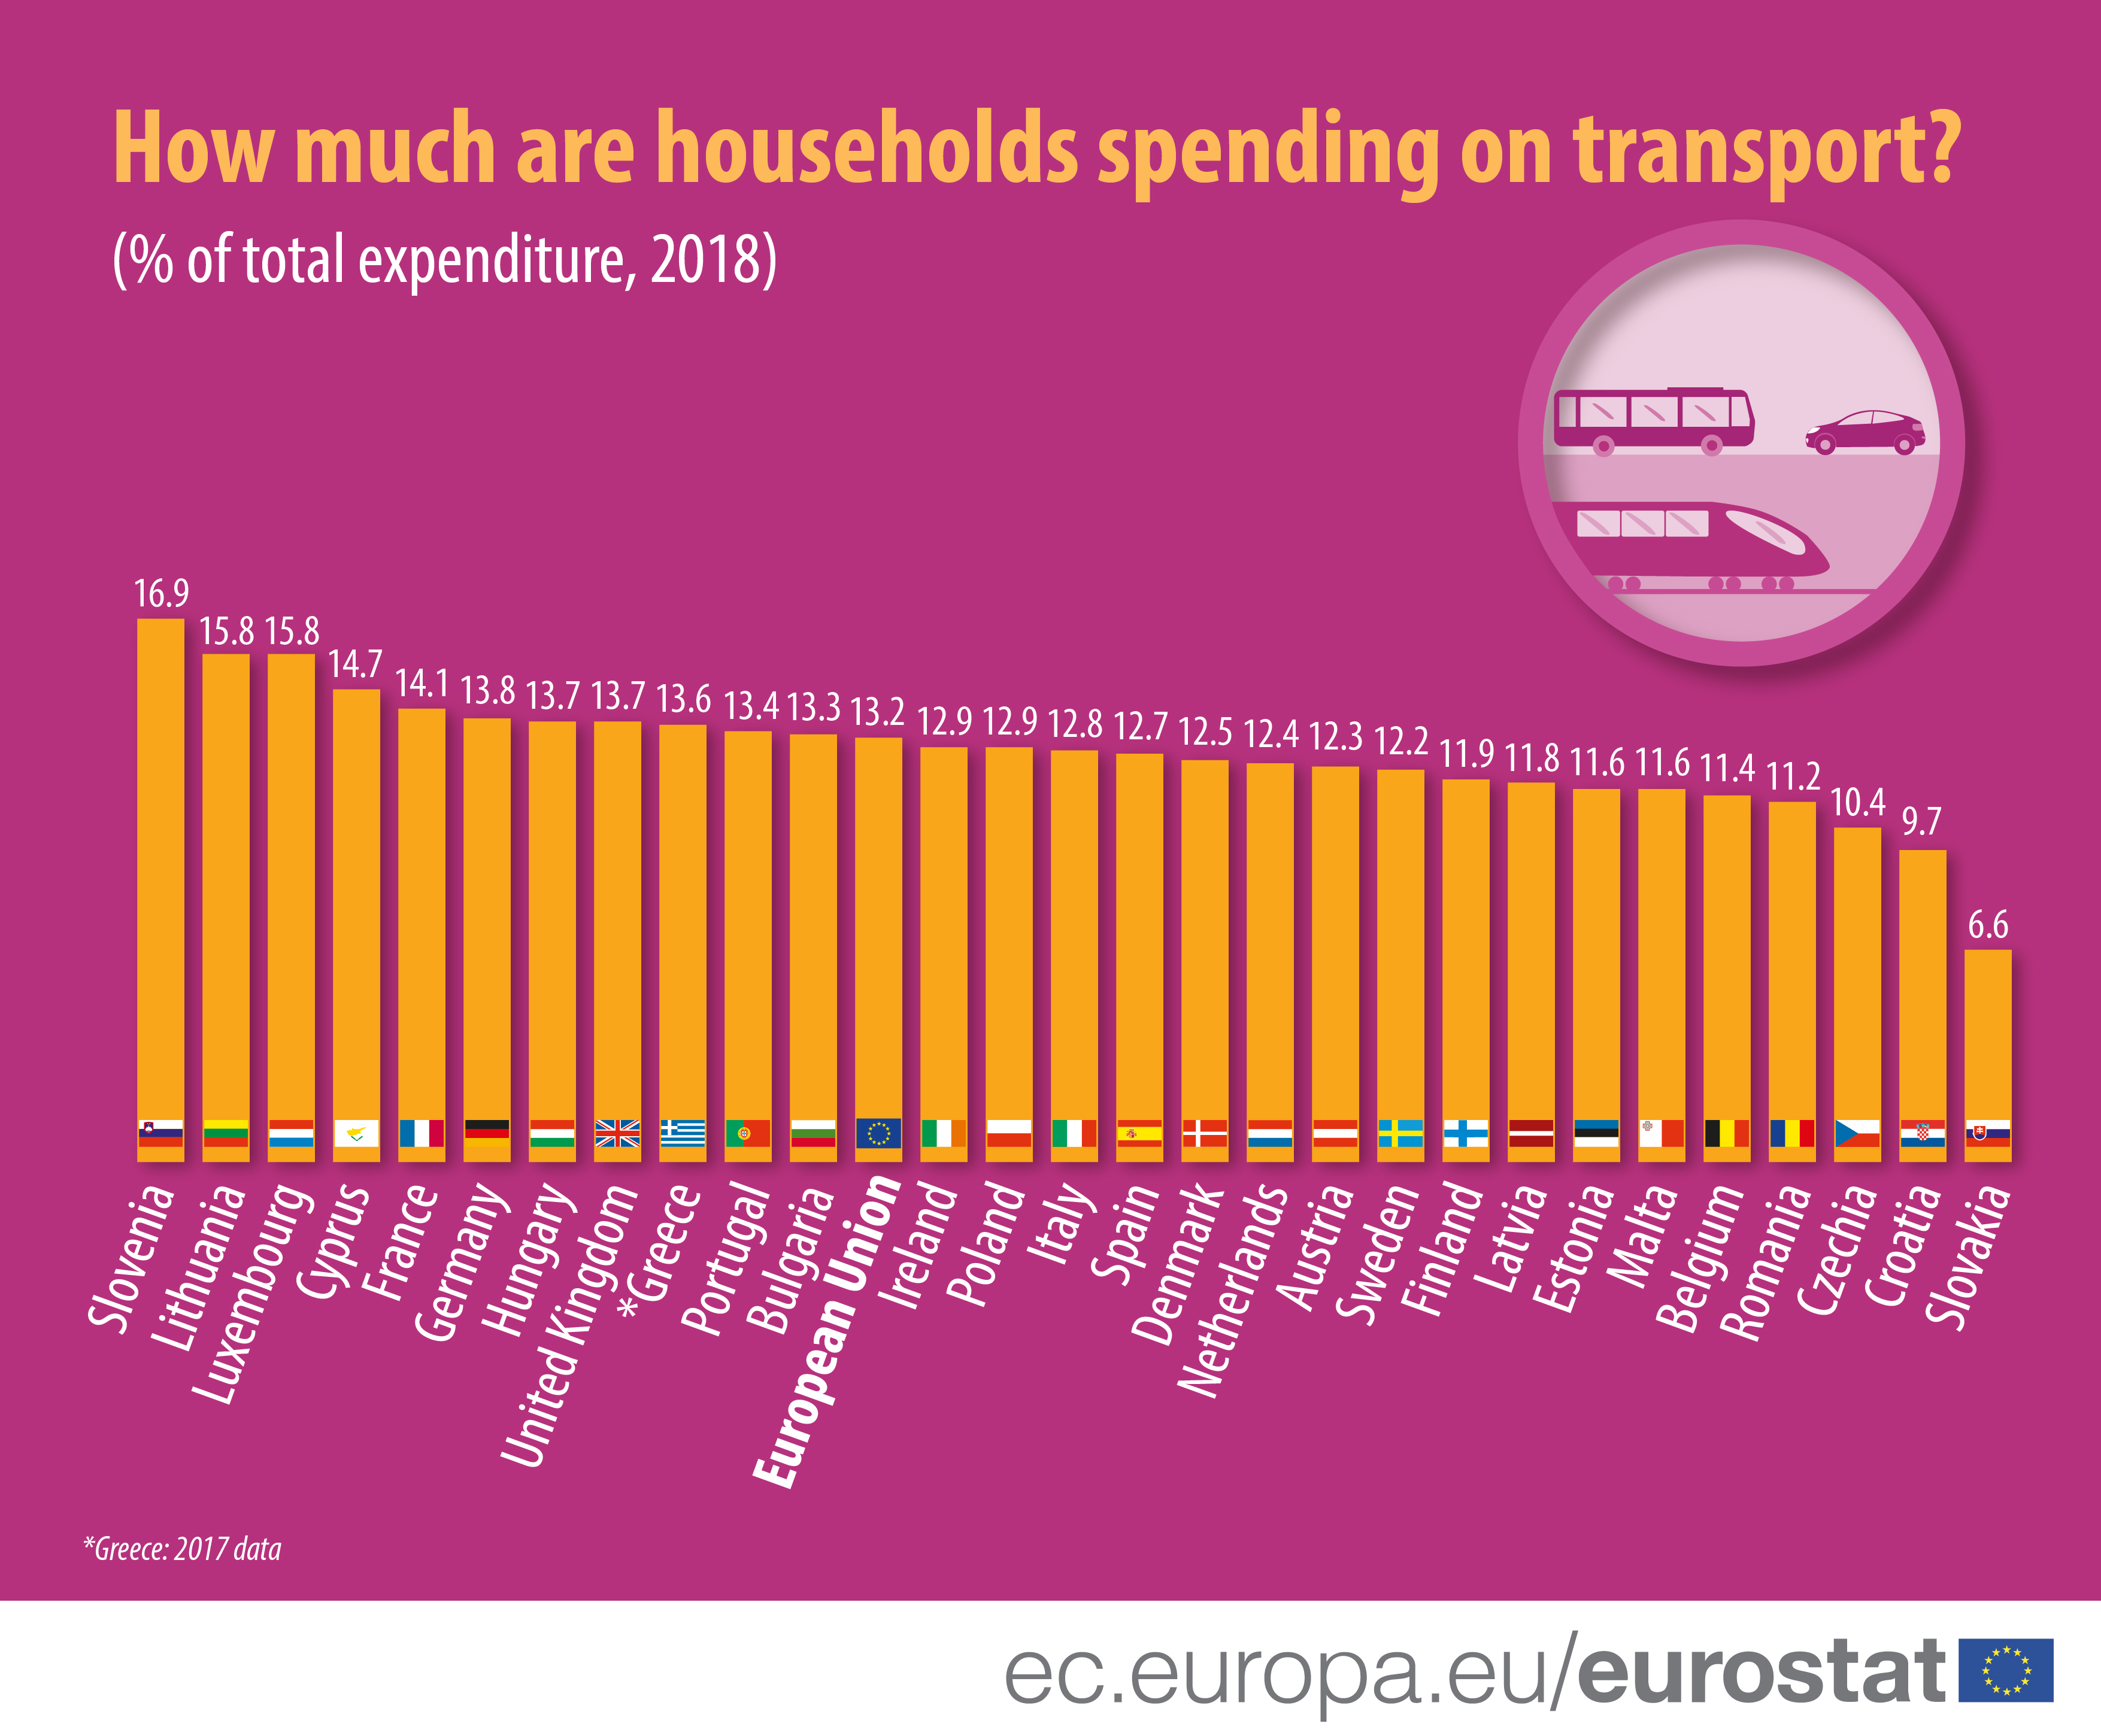 Household expenditure on transport